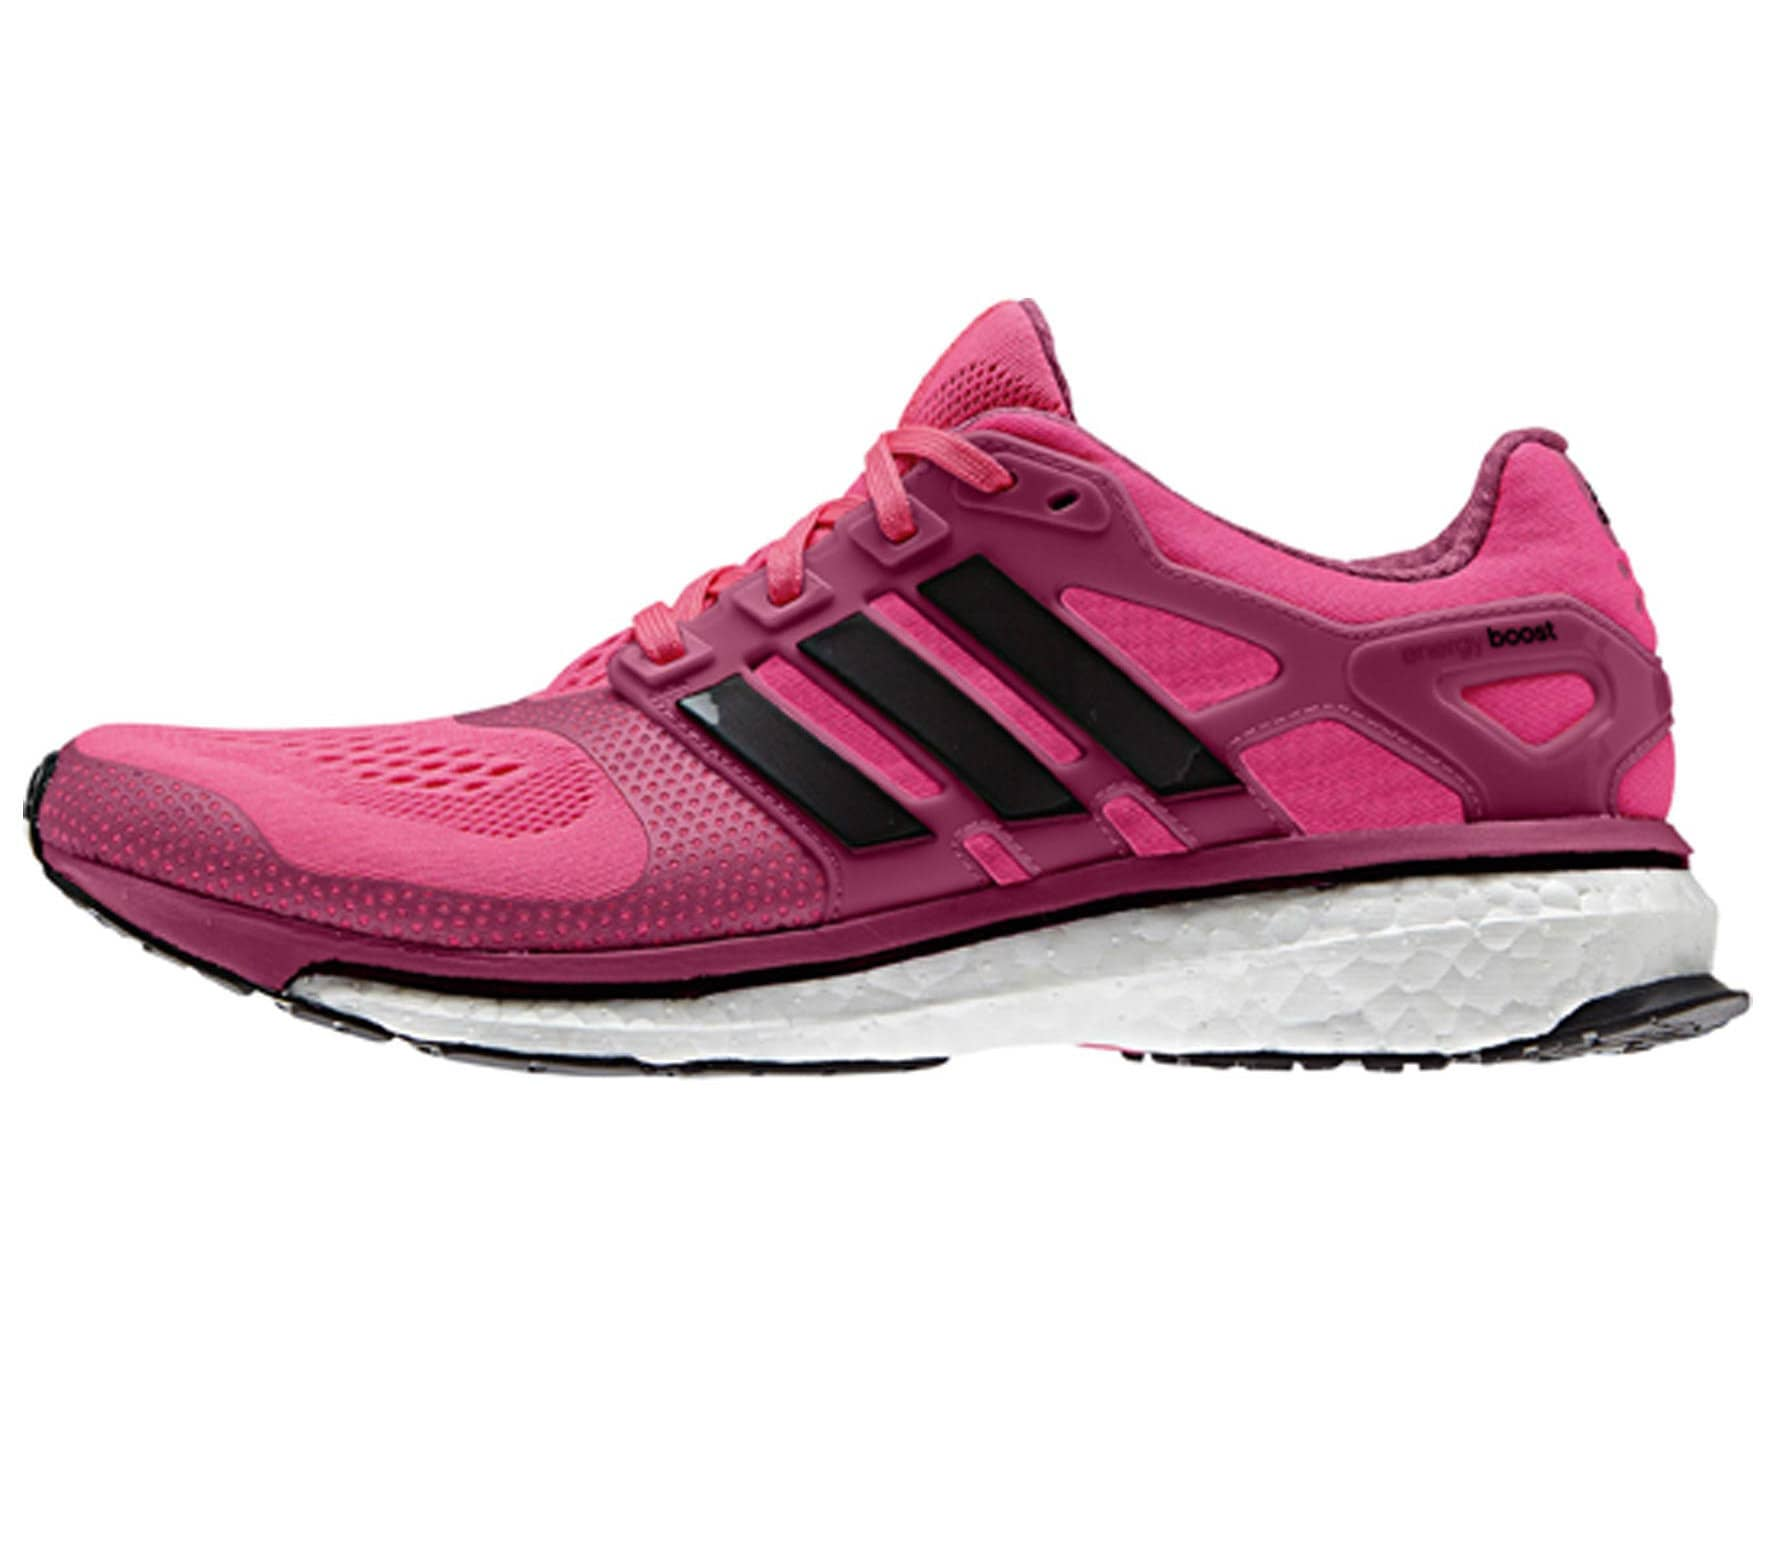 promo code 4fe62 674d8 Adidas - Energy Boost 2 ESM women s running shoes (pink black)